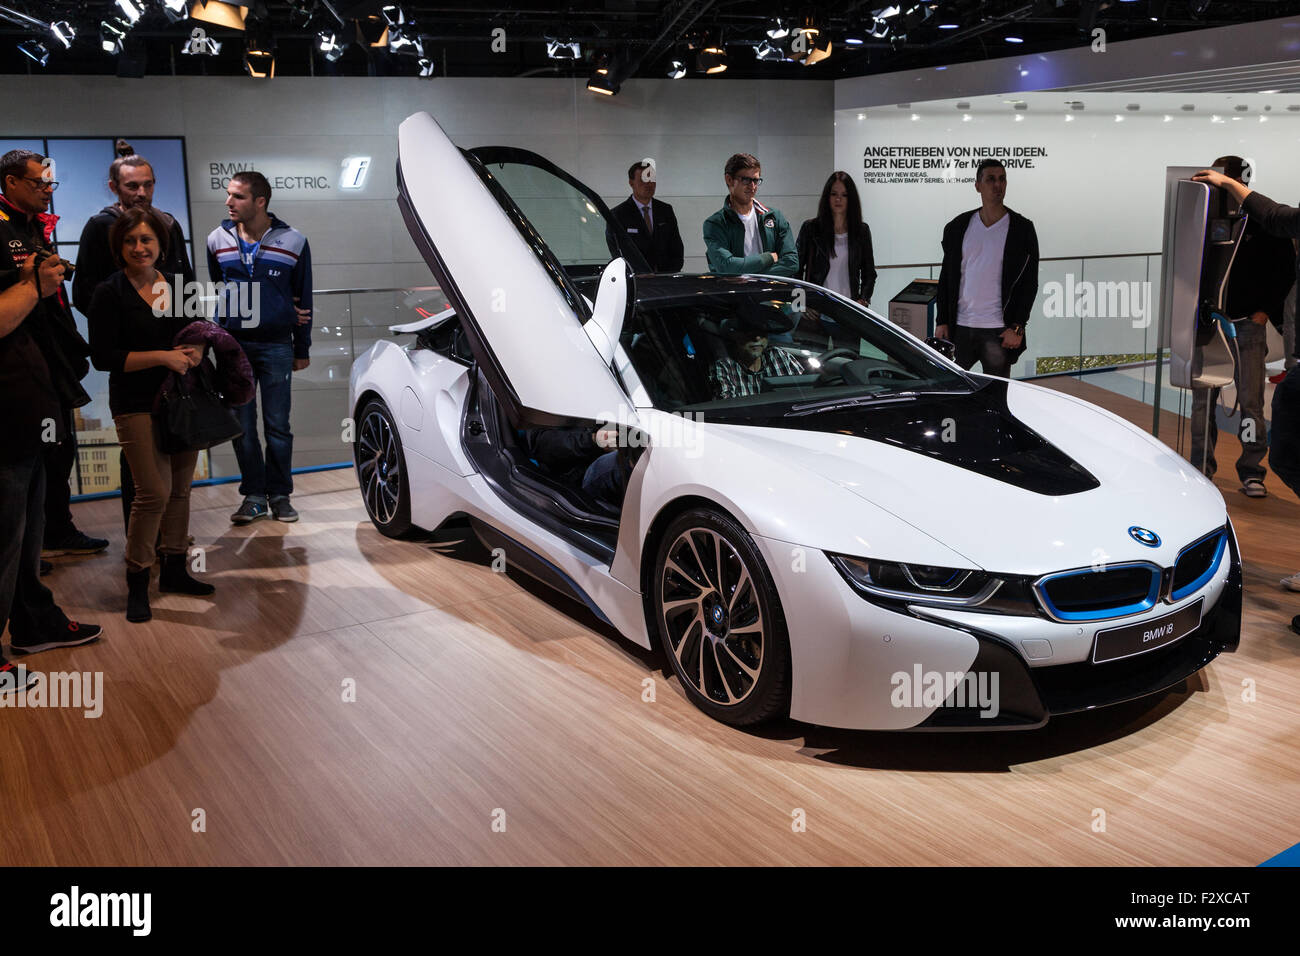 Bmw I8 Electric Sports Car At The Iaa International Motor Show 2015